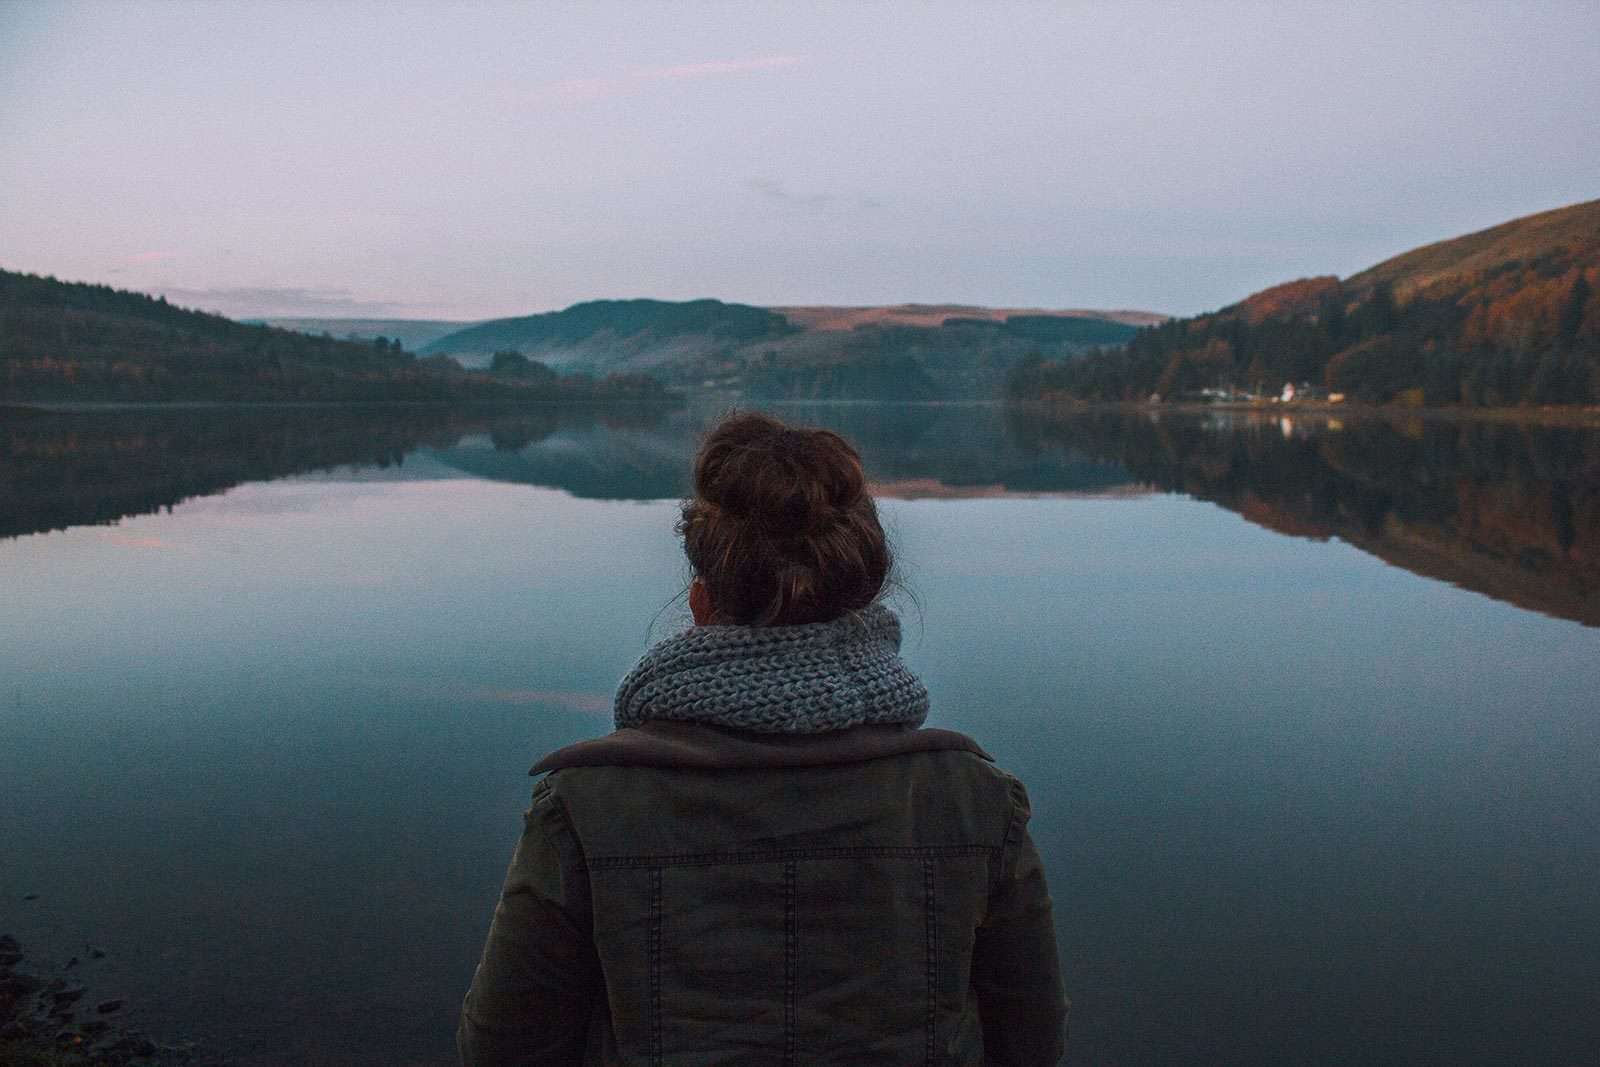 Back of woman in jacket and scarf looking at lake and hills.